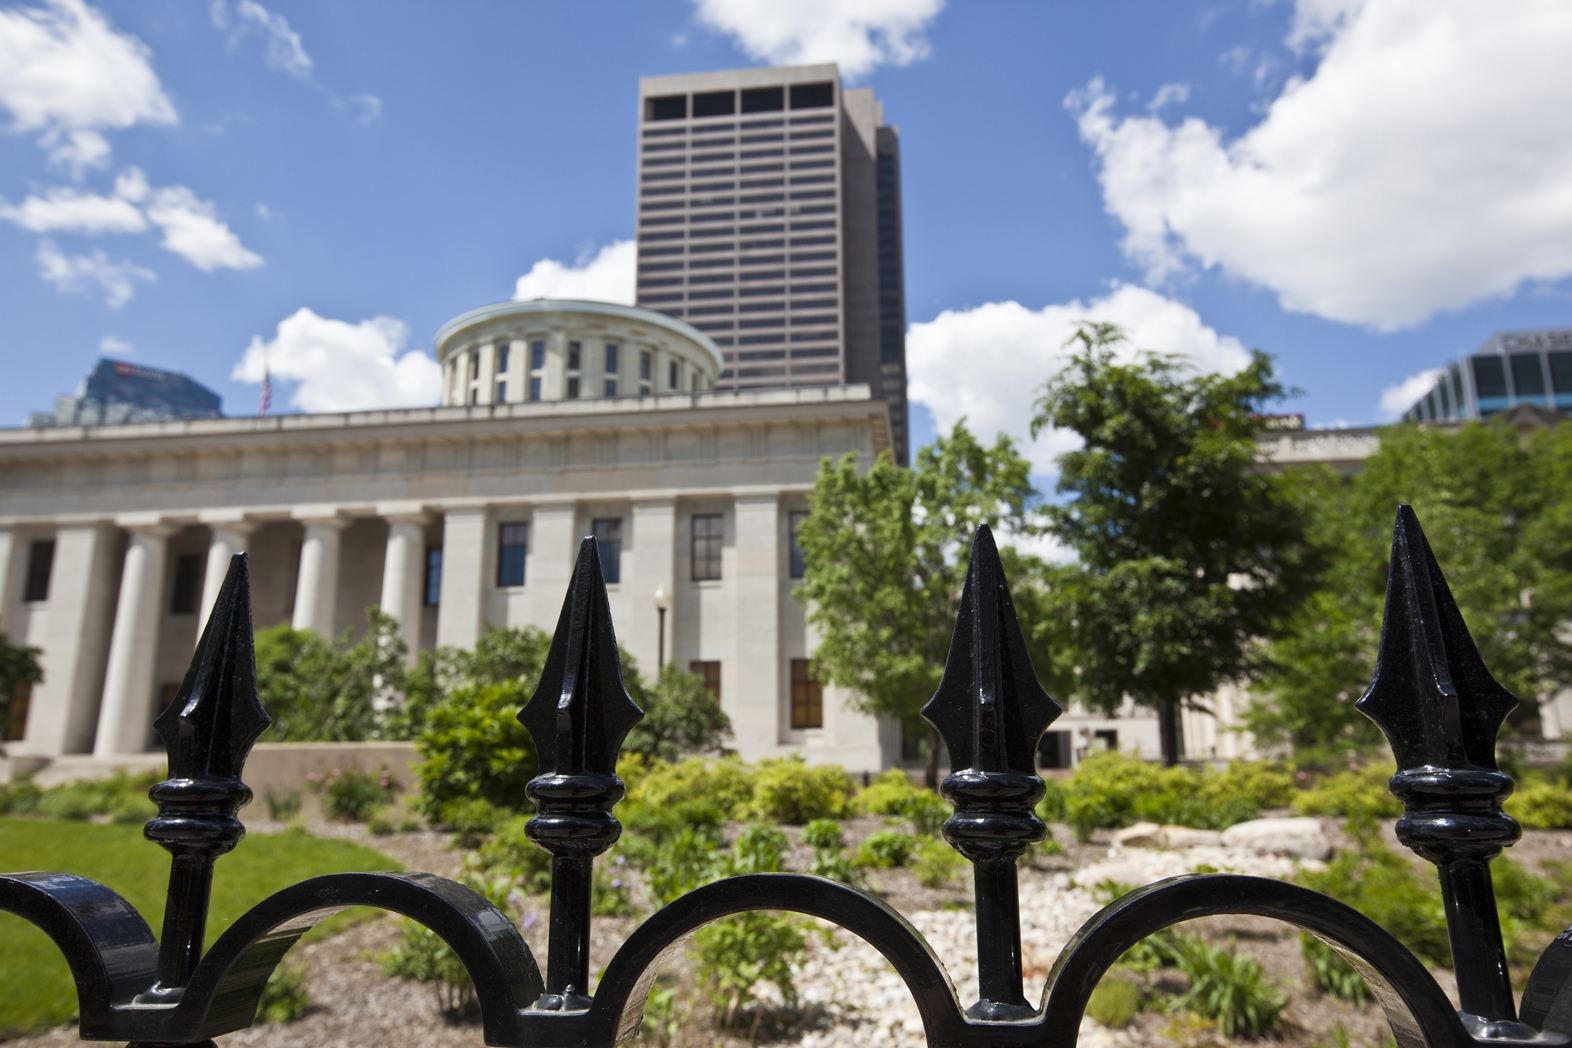 SMALL Statehouse Image OLCA Purch shutterstock_199035605.jpg